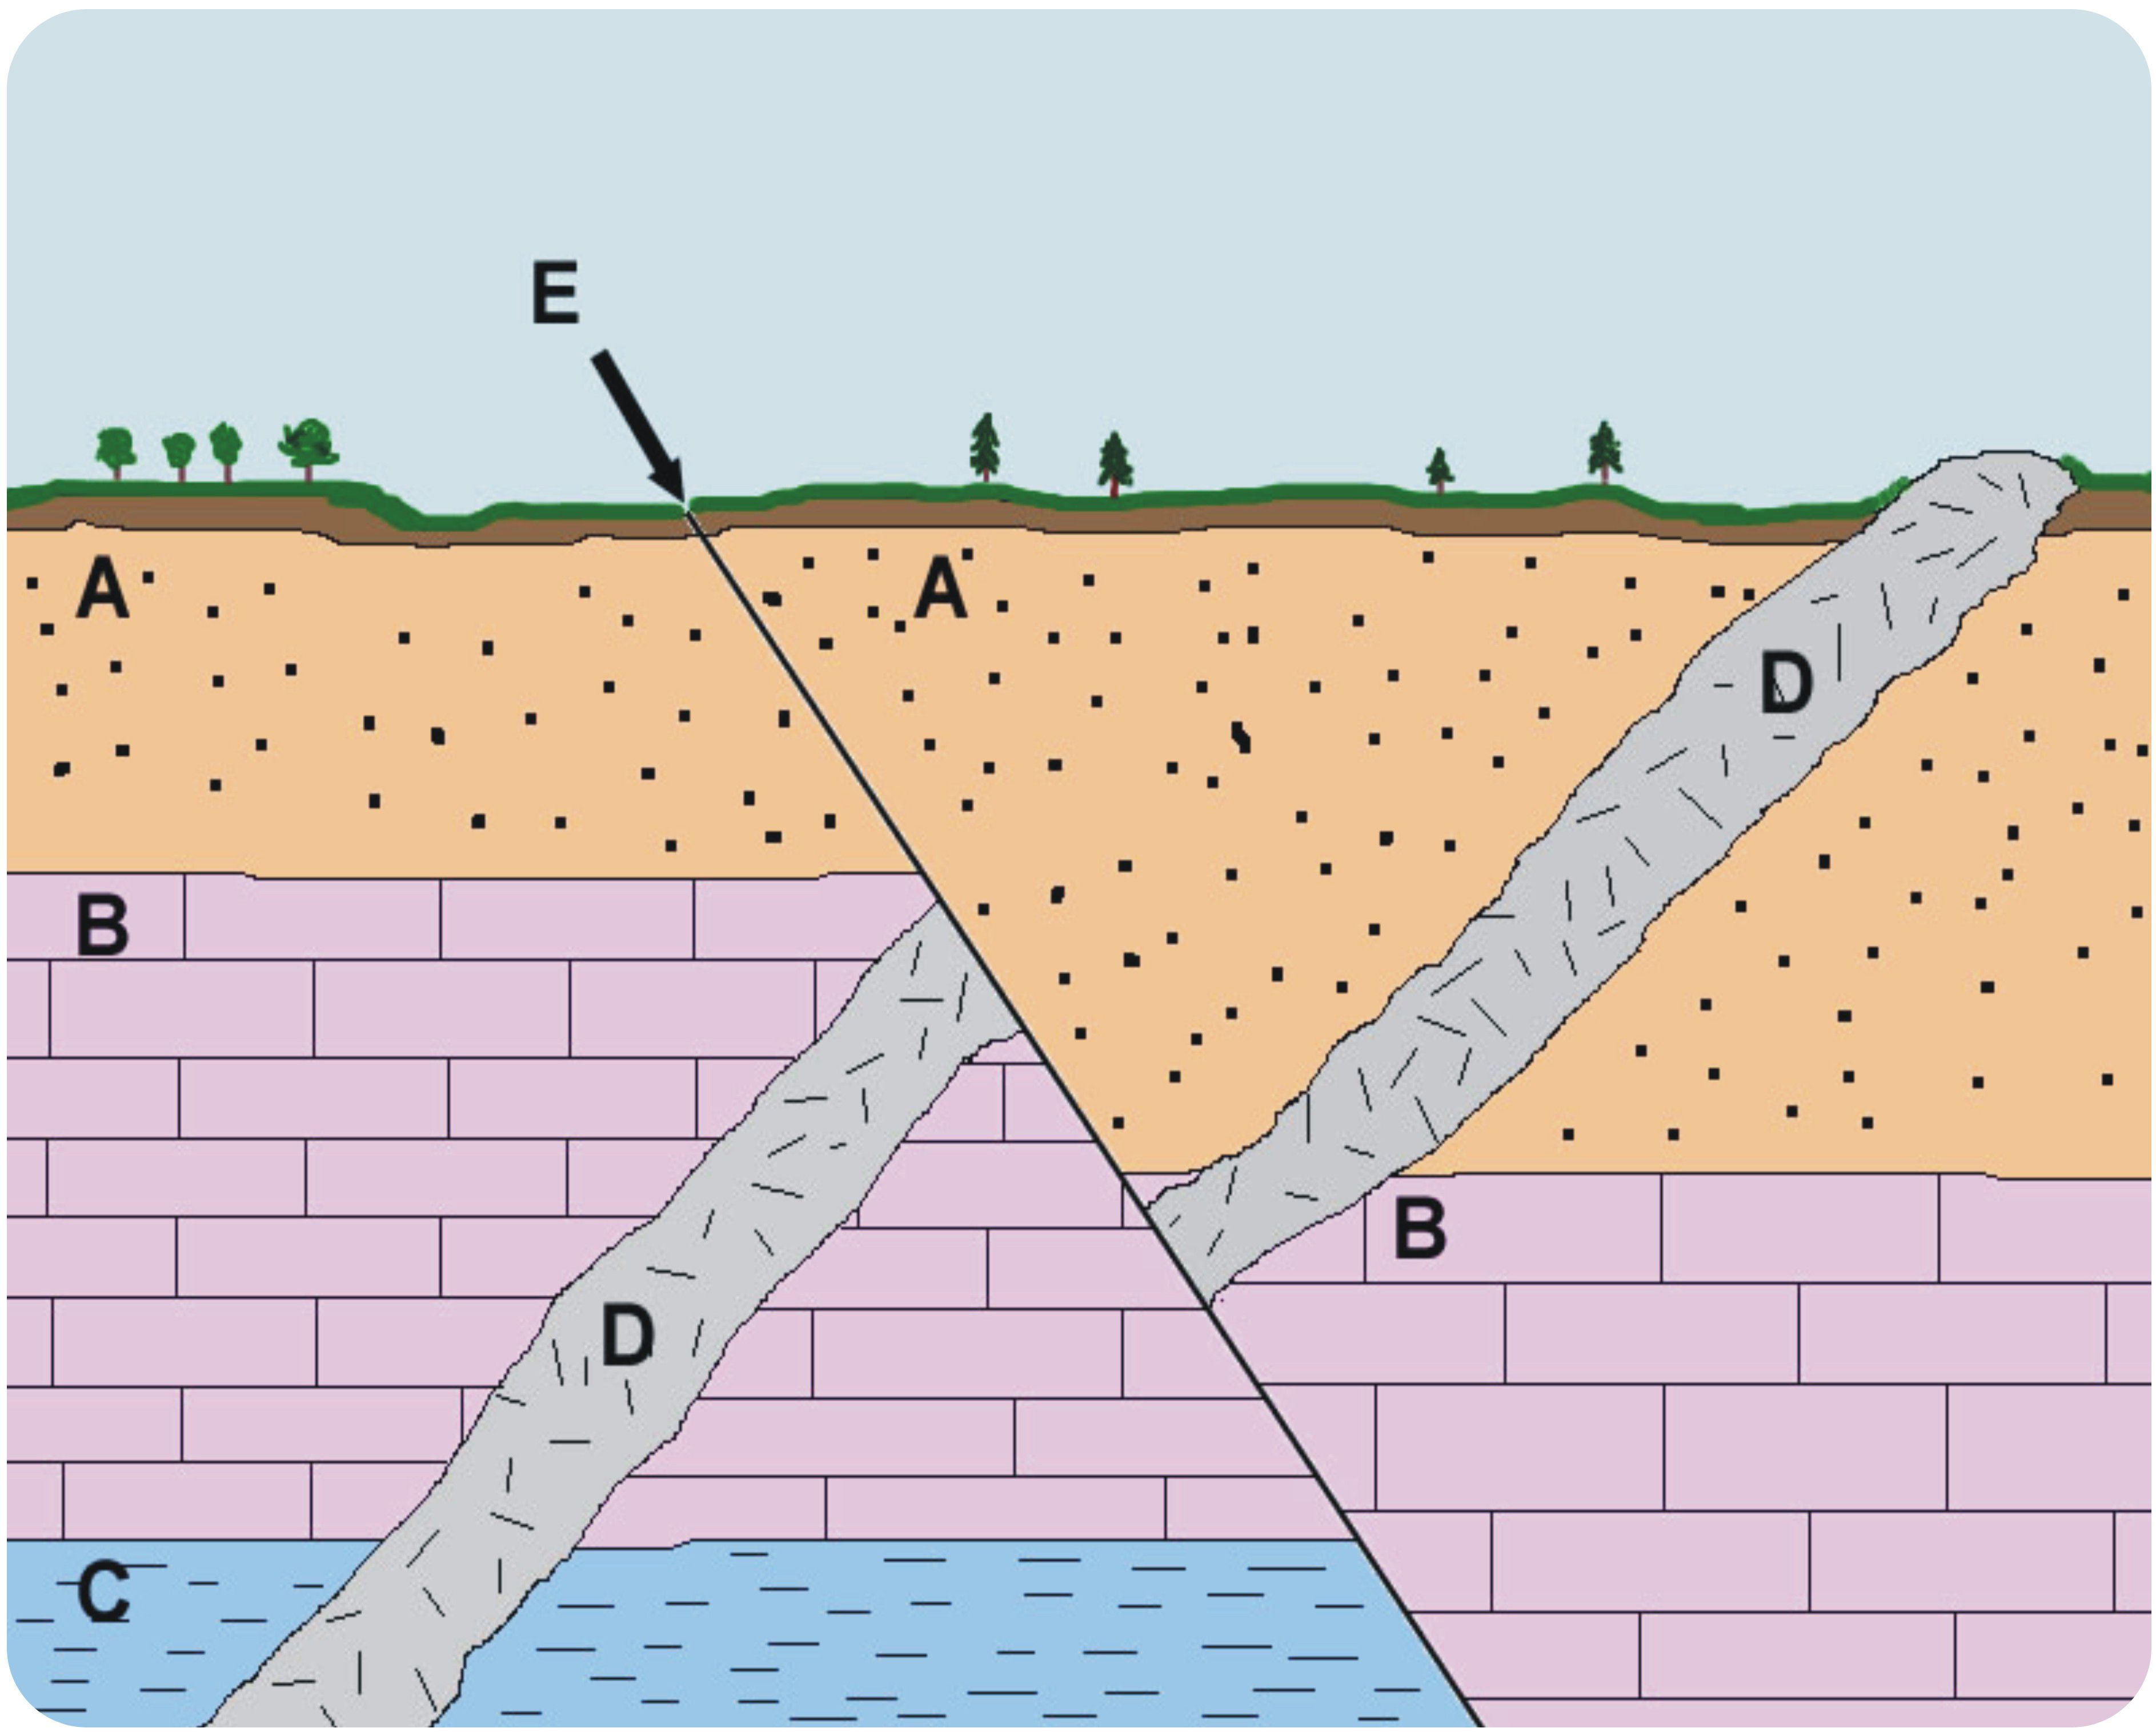 Stratigraphy for relative dating